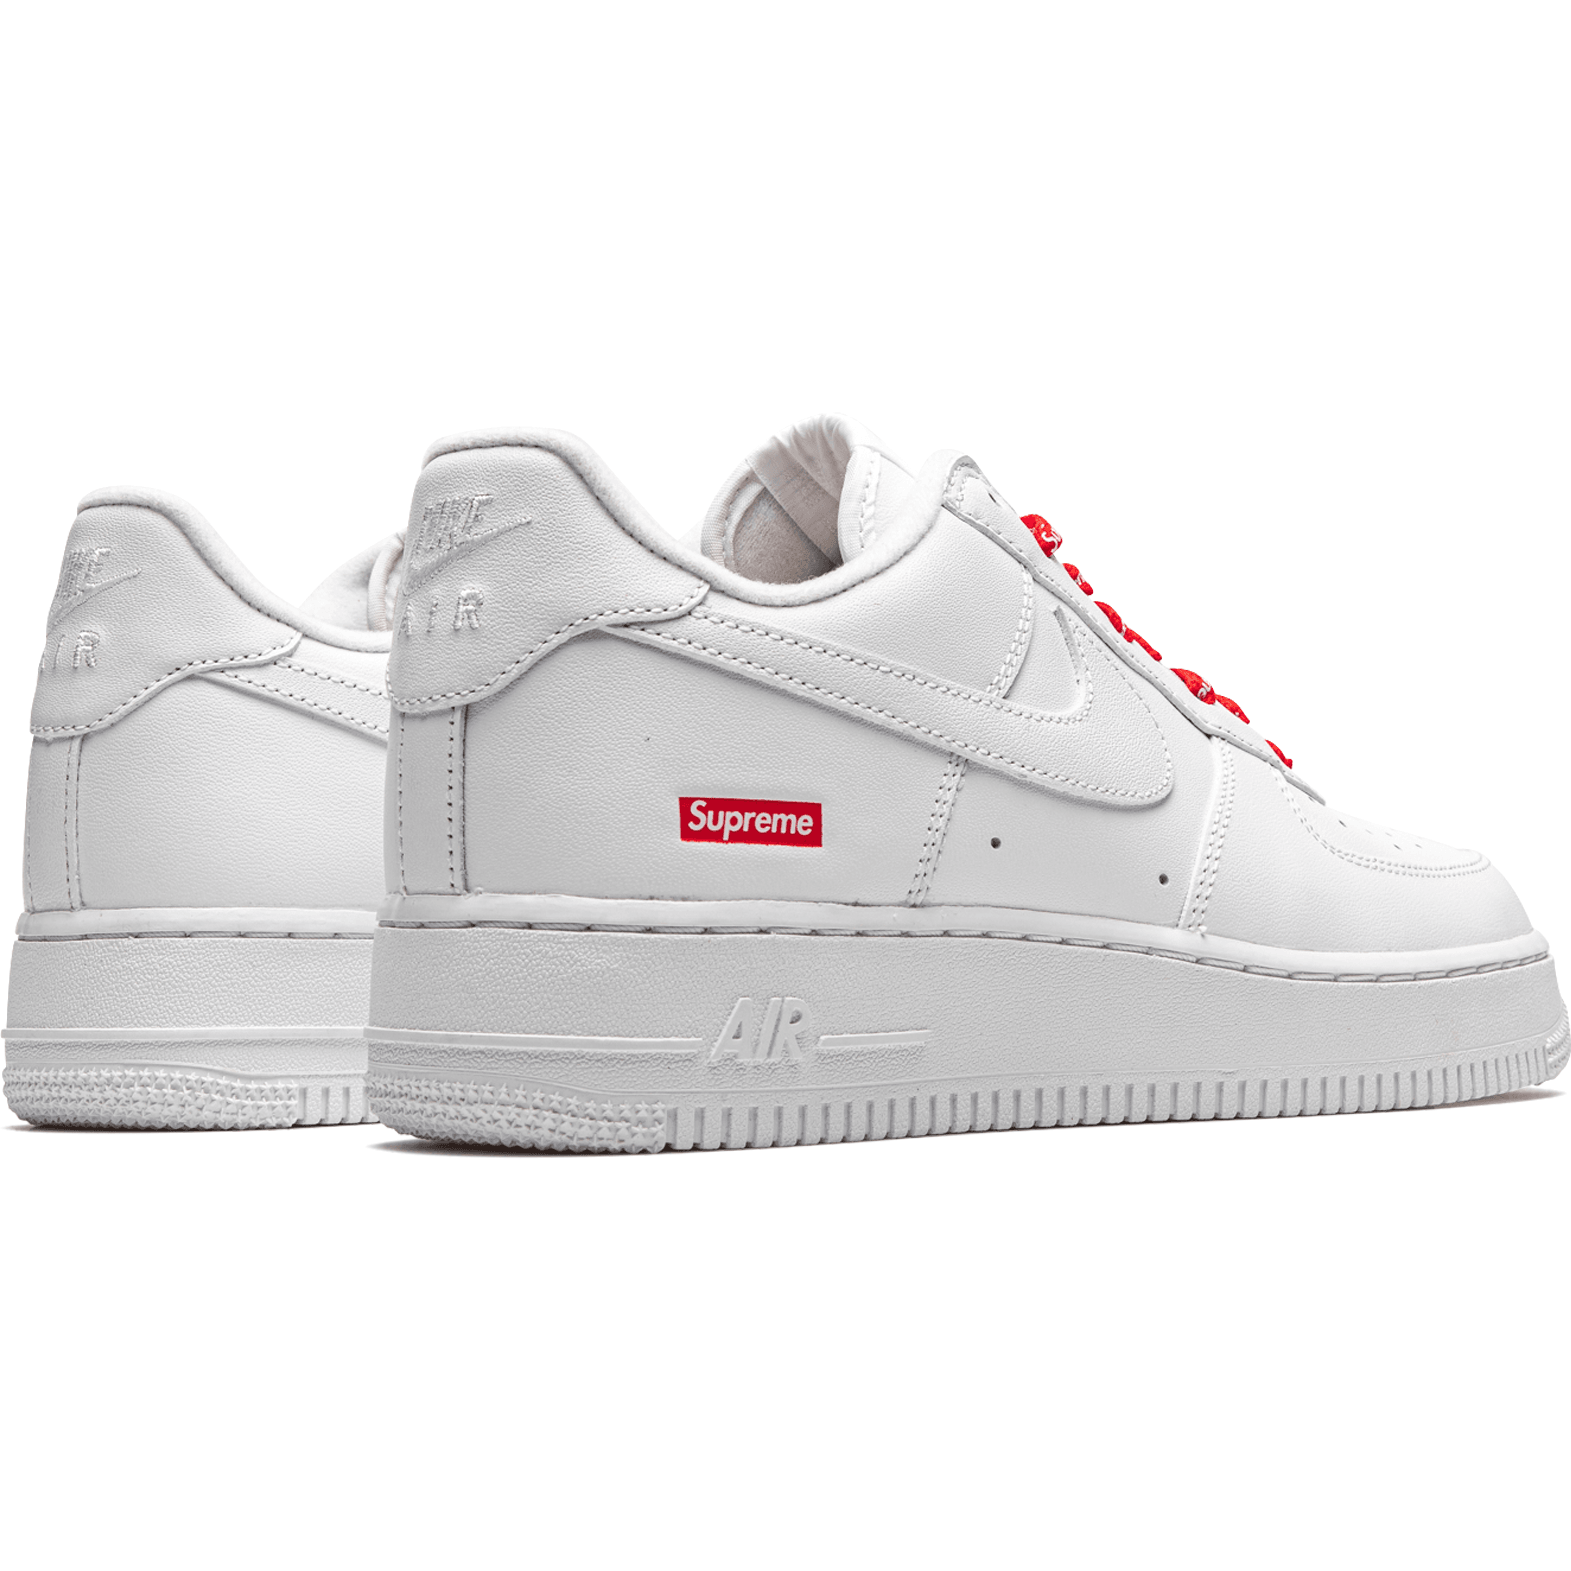 Nike Air Force 1 Low Supreme - Mini Box Logo - White